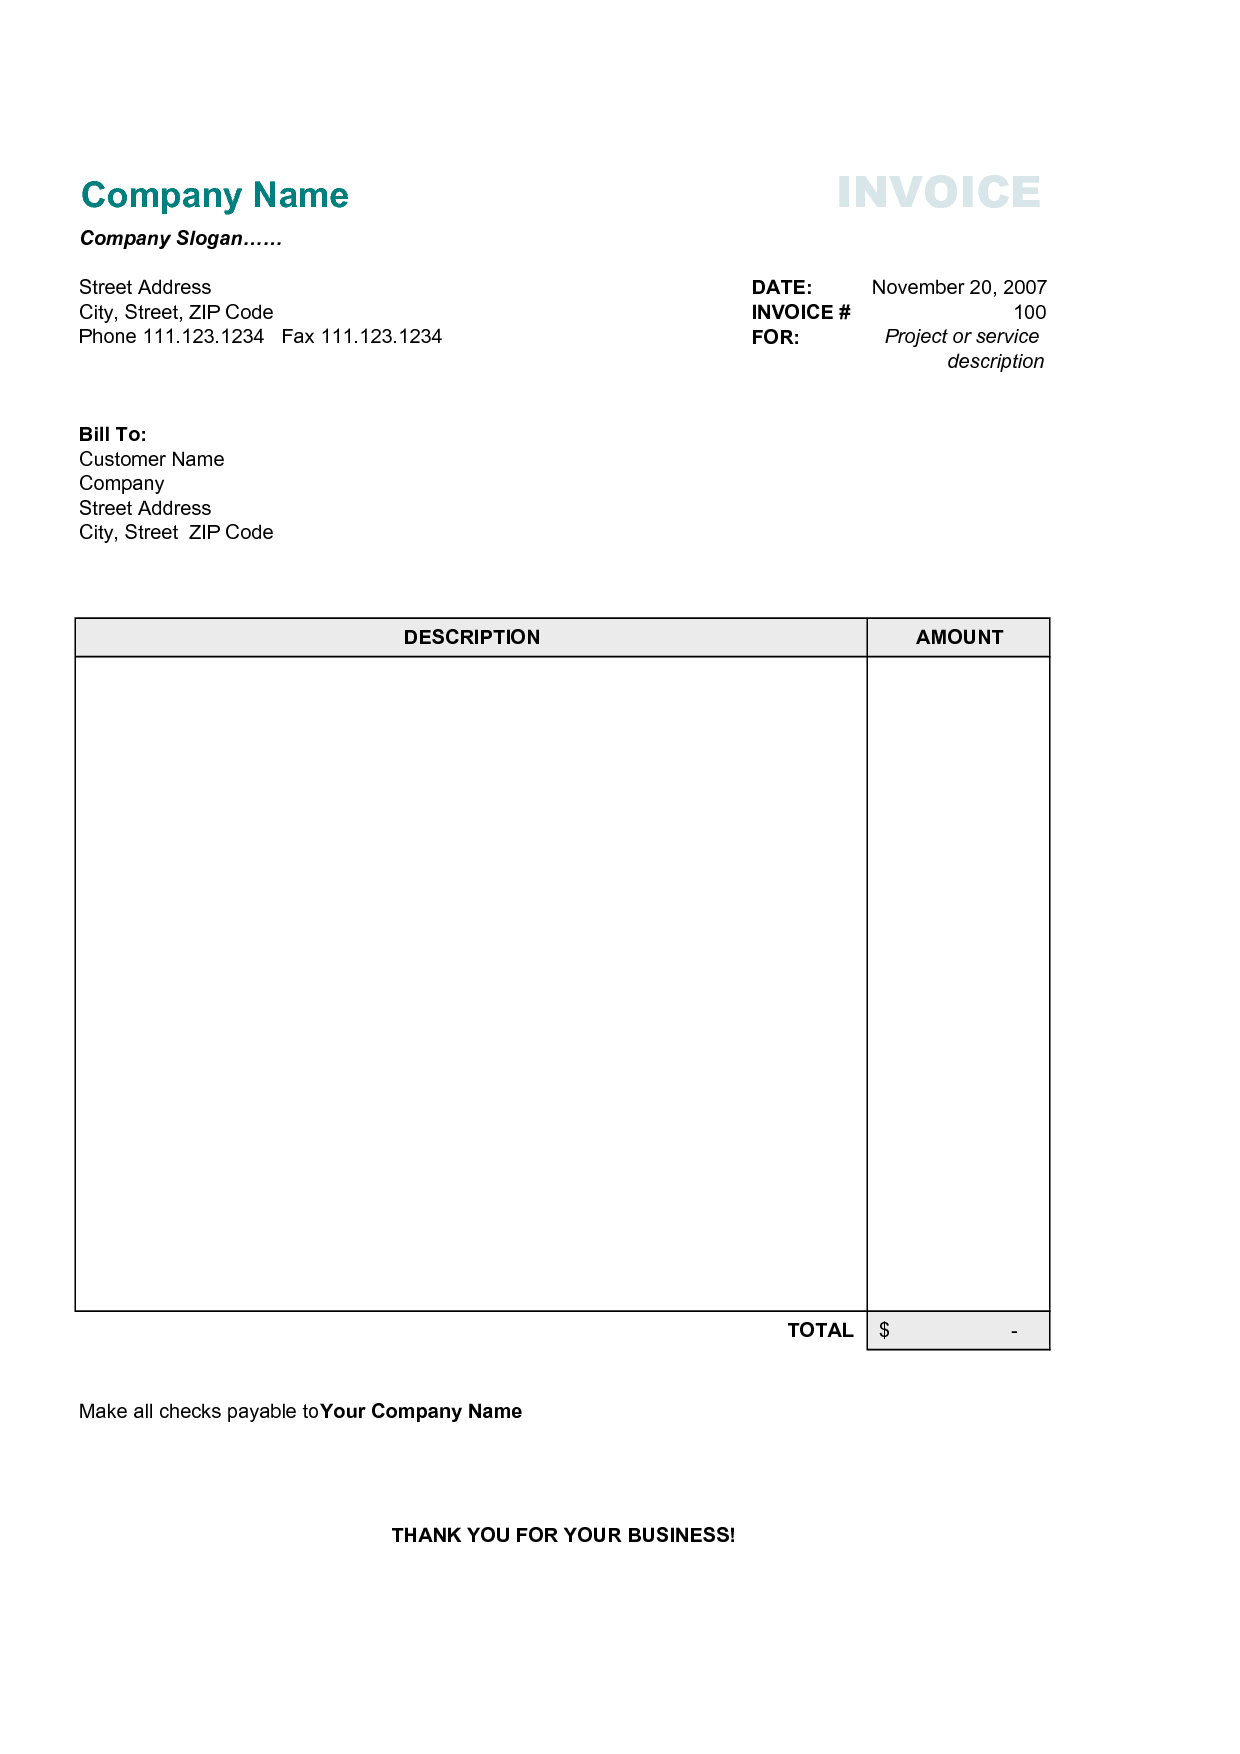 Simple Invoice Template Invoice Example - Free billing invoice forms for service business